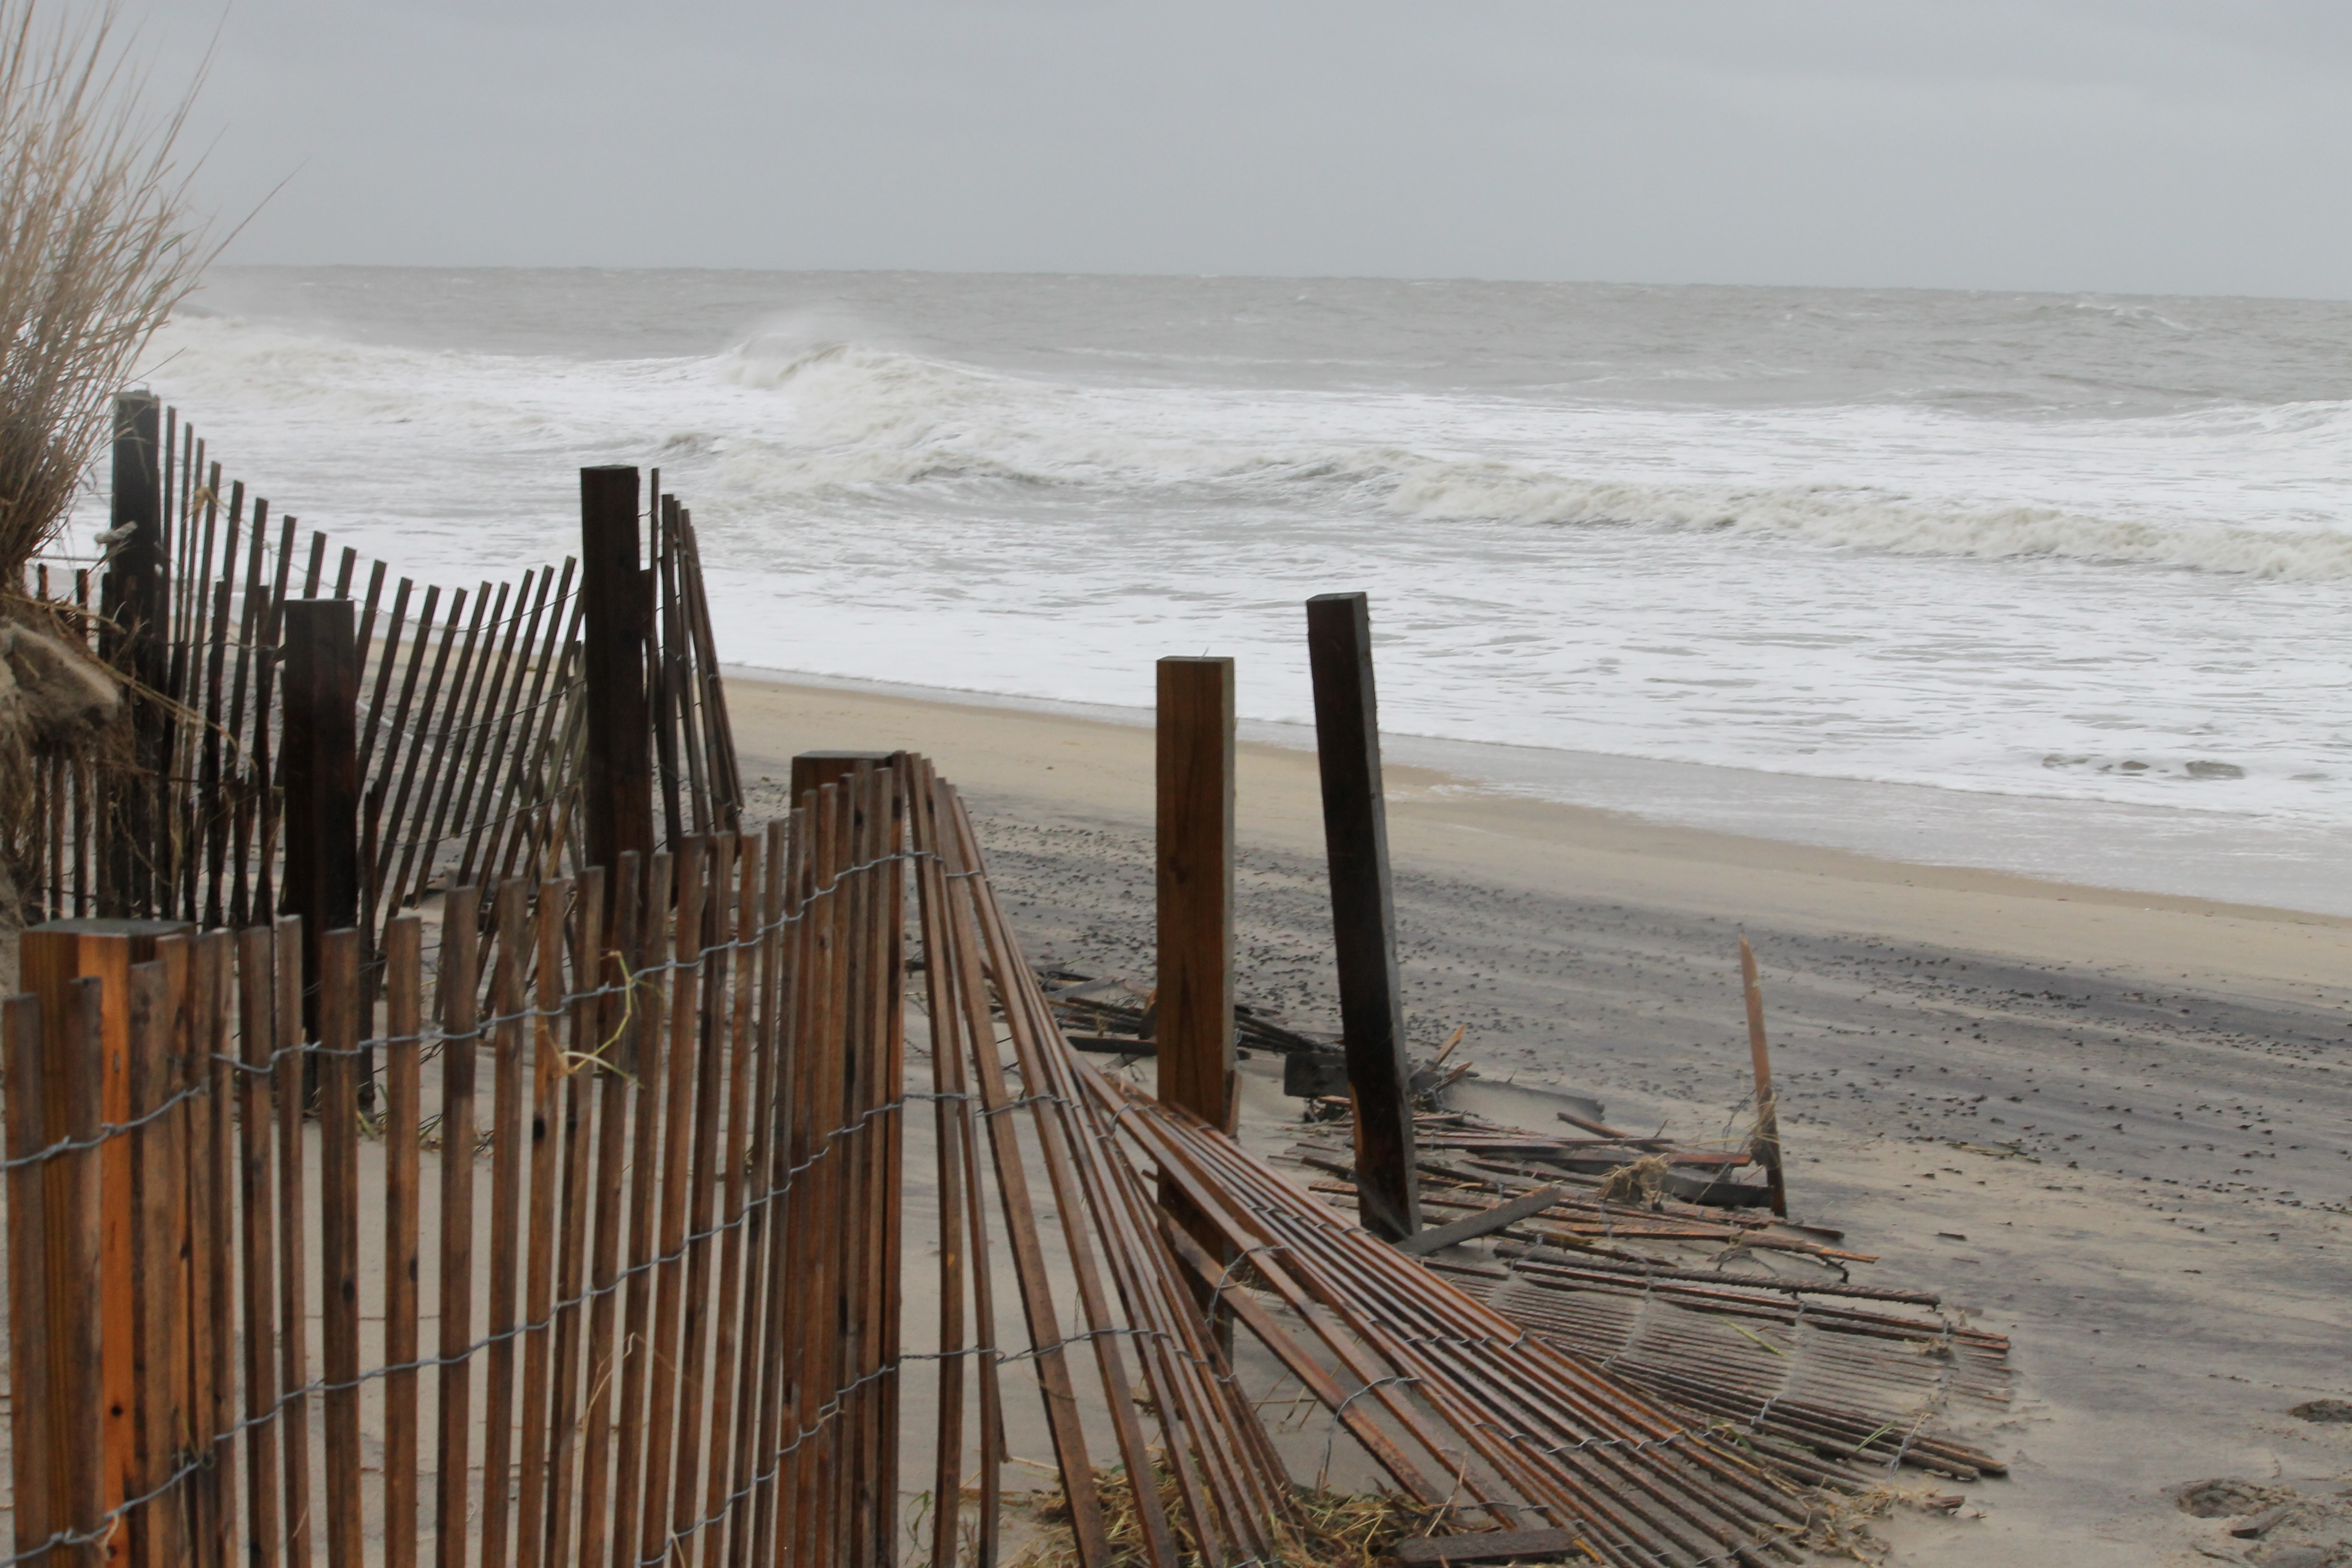 Water is receding and Ocean City is open from 17th St. North